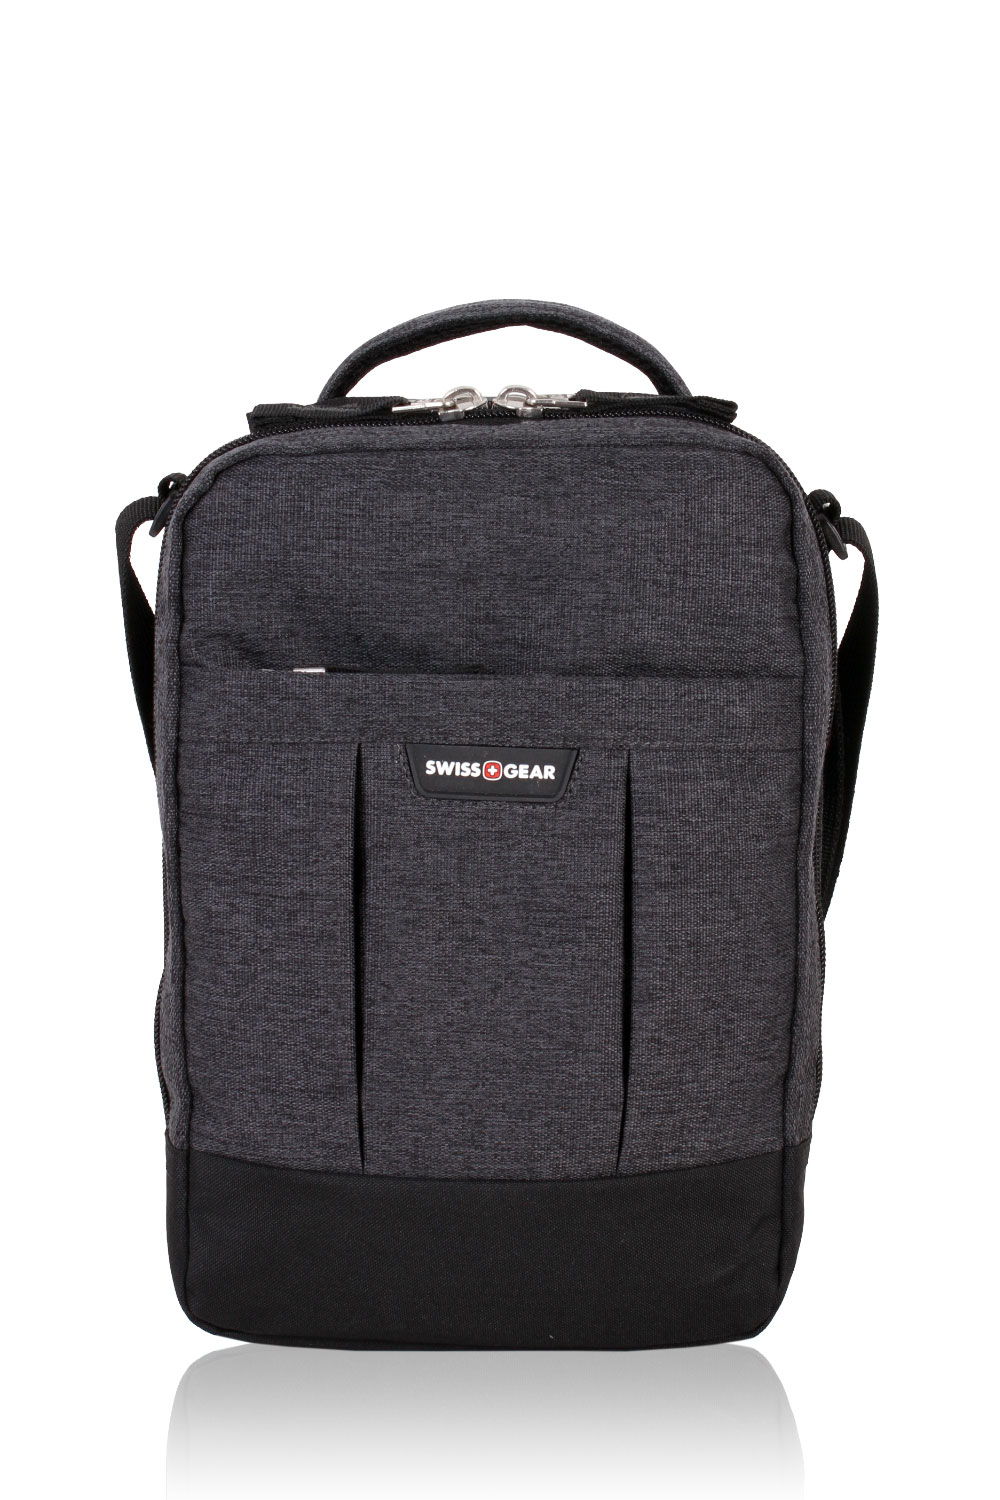 Swissgear 1805 Mini Messenger Bag Black